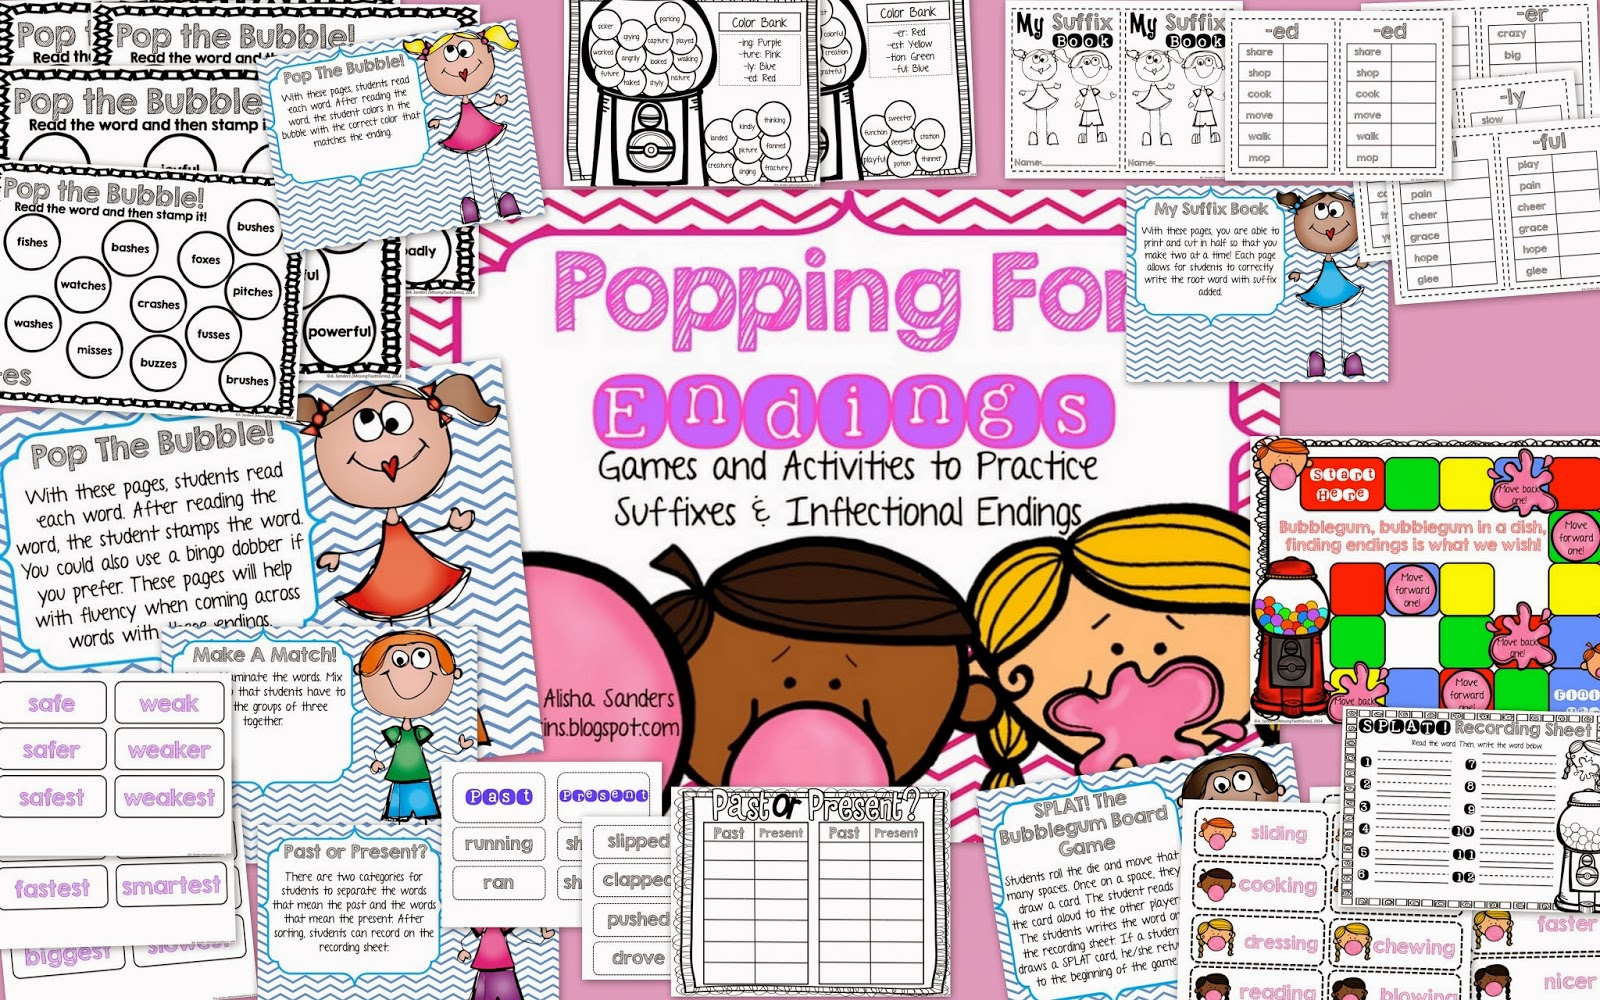 http://www.teacherspayteachers.com/Product/Popping-For-Endings-Games-Activities-for-Suffixes-Inflectional-Endings-1129278